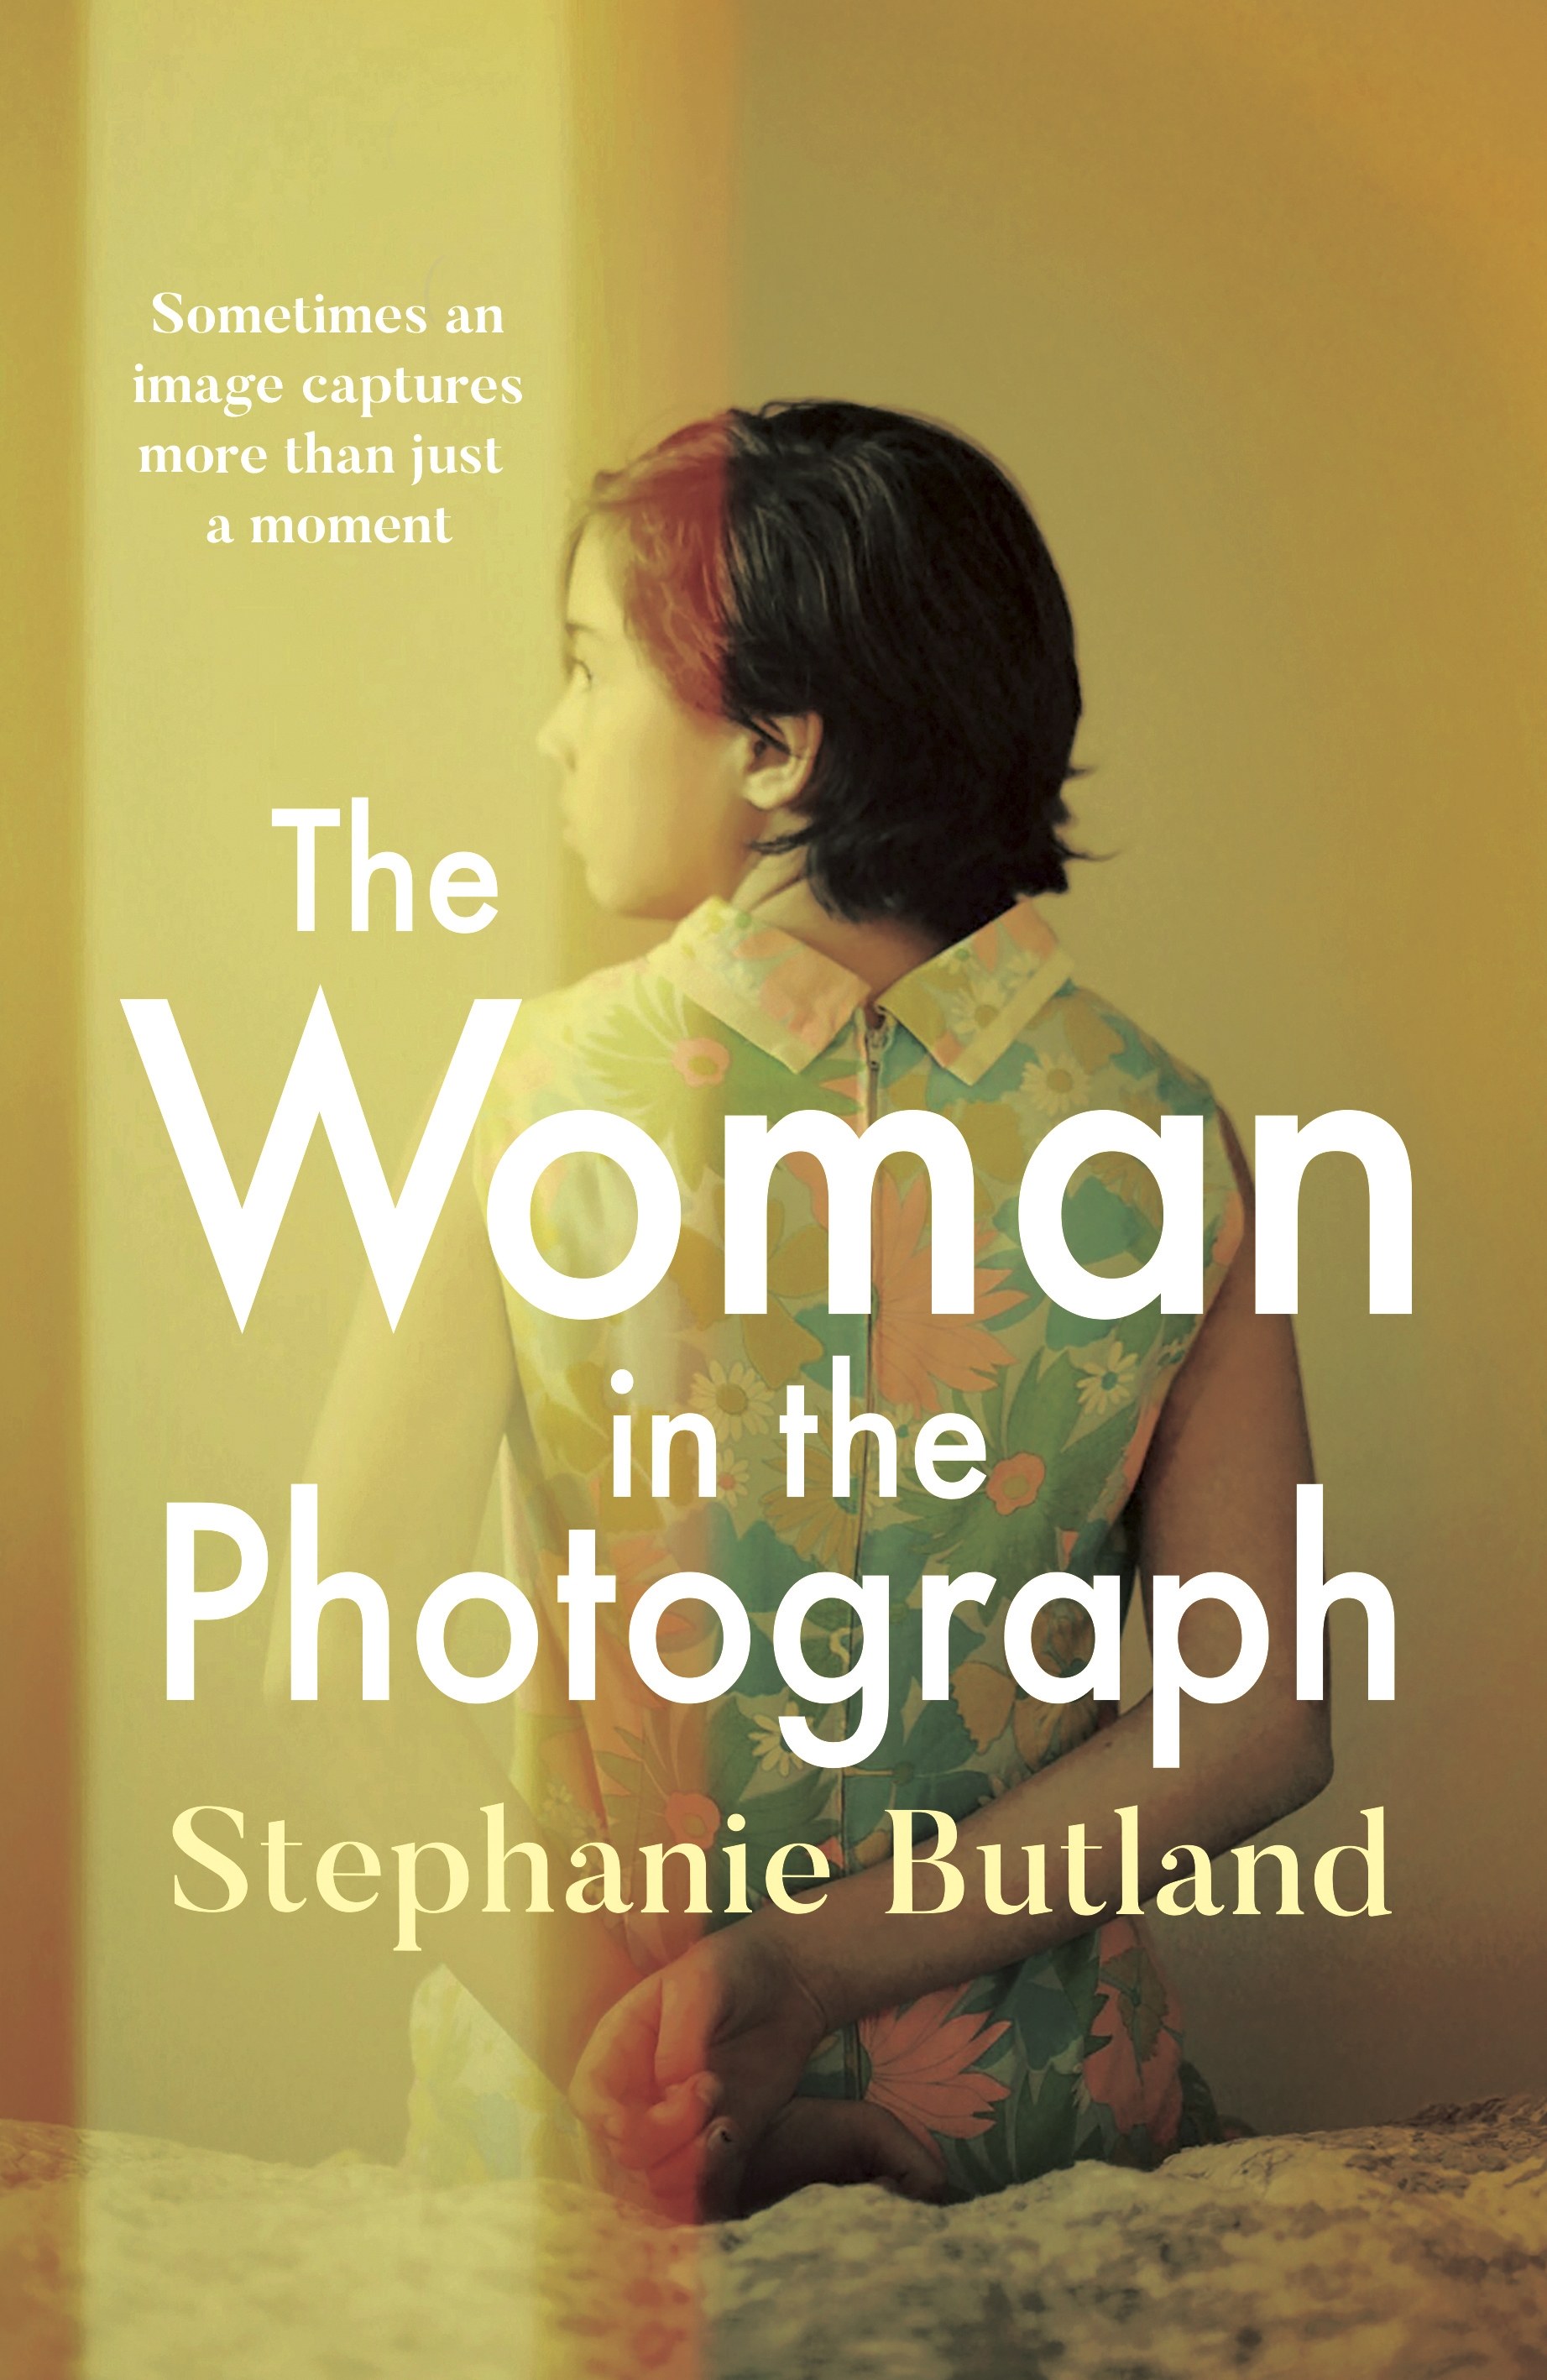 The Woman in the Photograpgh.jpg